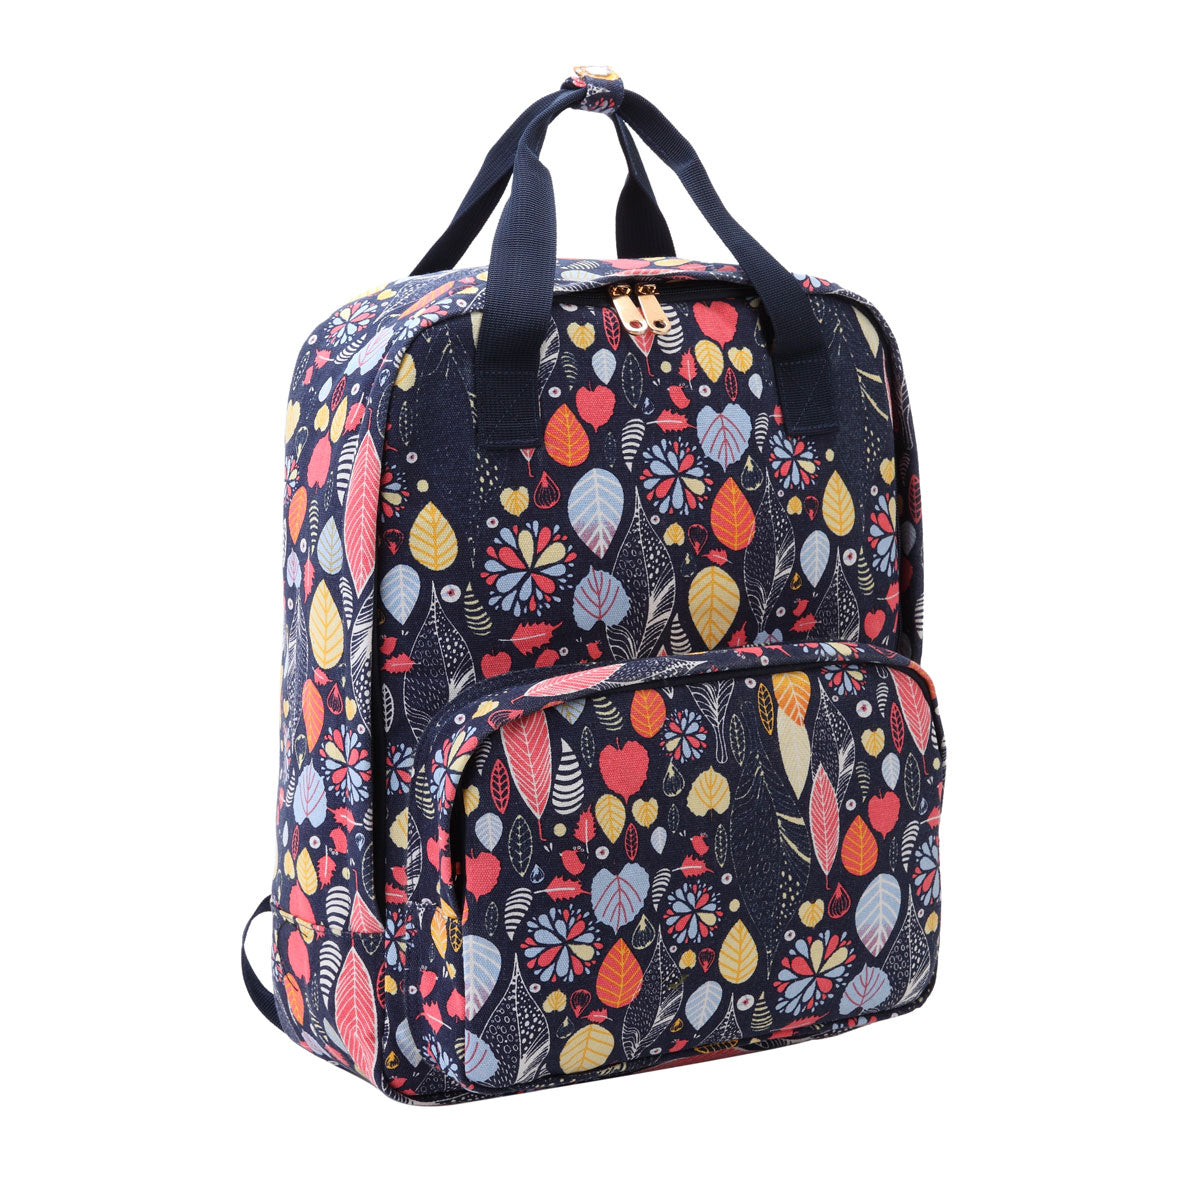 Ladies Laptop Backpack Bag QL5175N